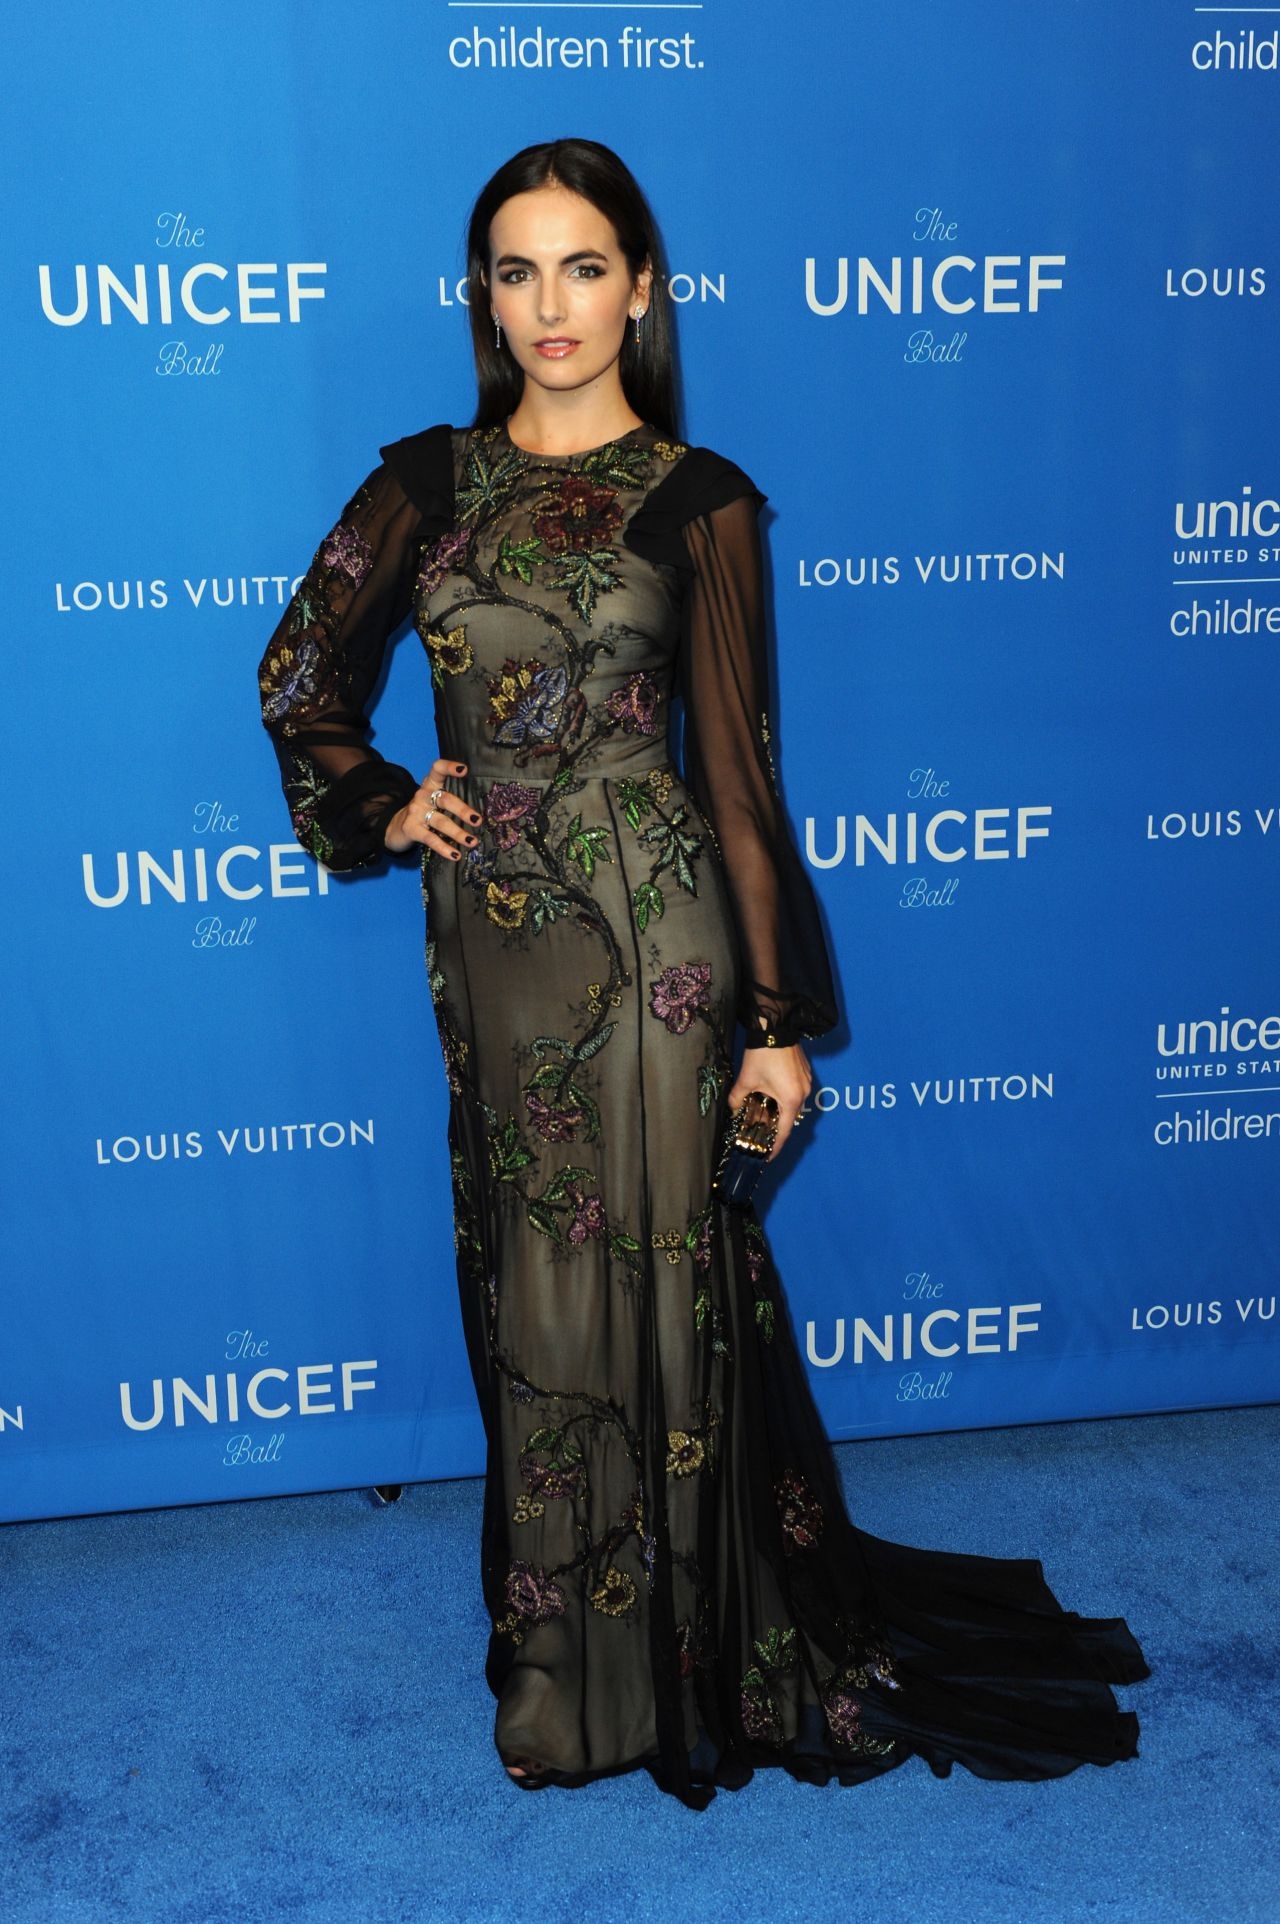 Camilla belle 6th biennial unicef ball in beverly hills 01 12 2016 1